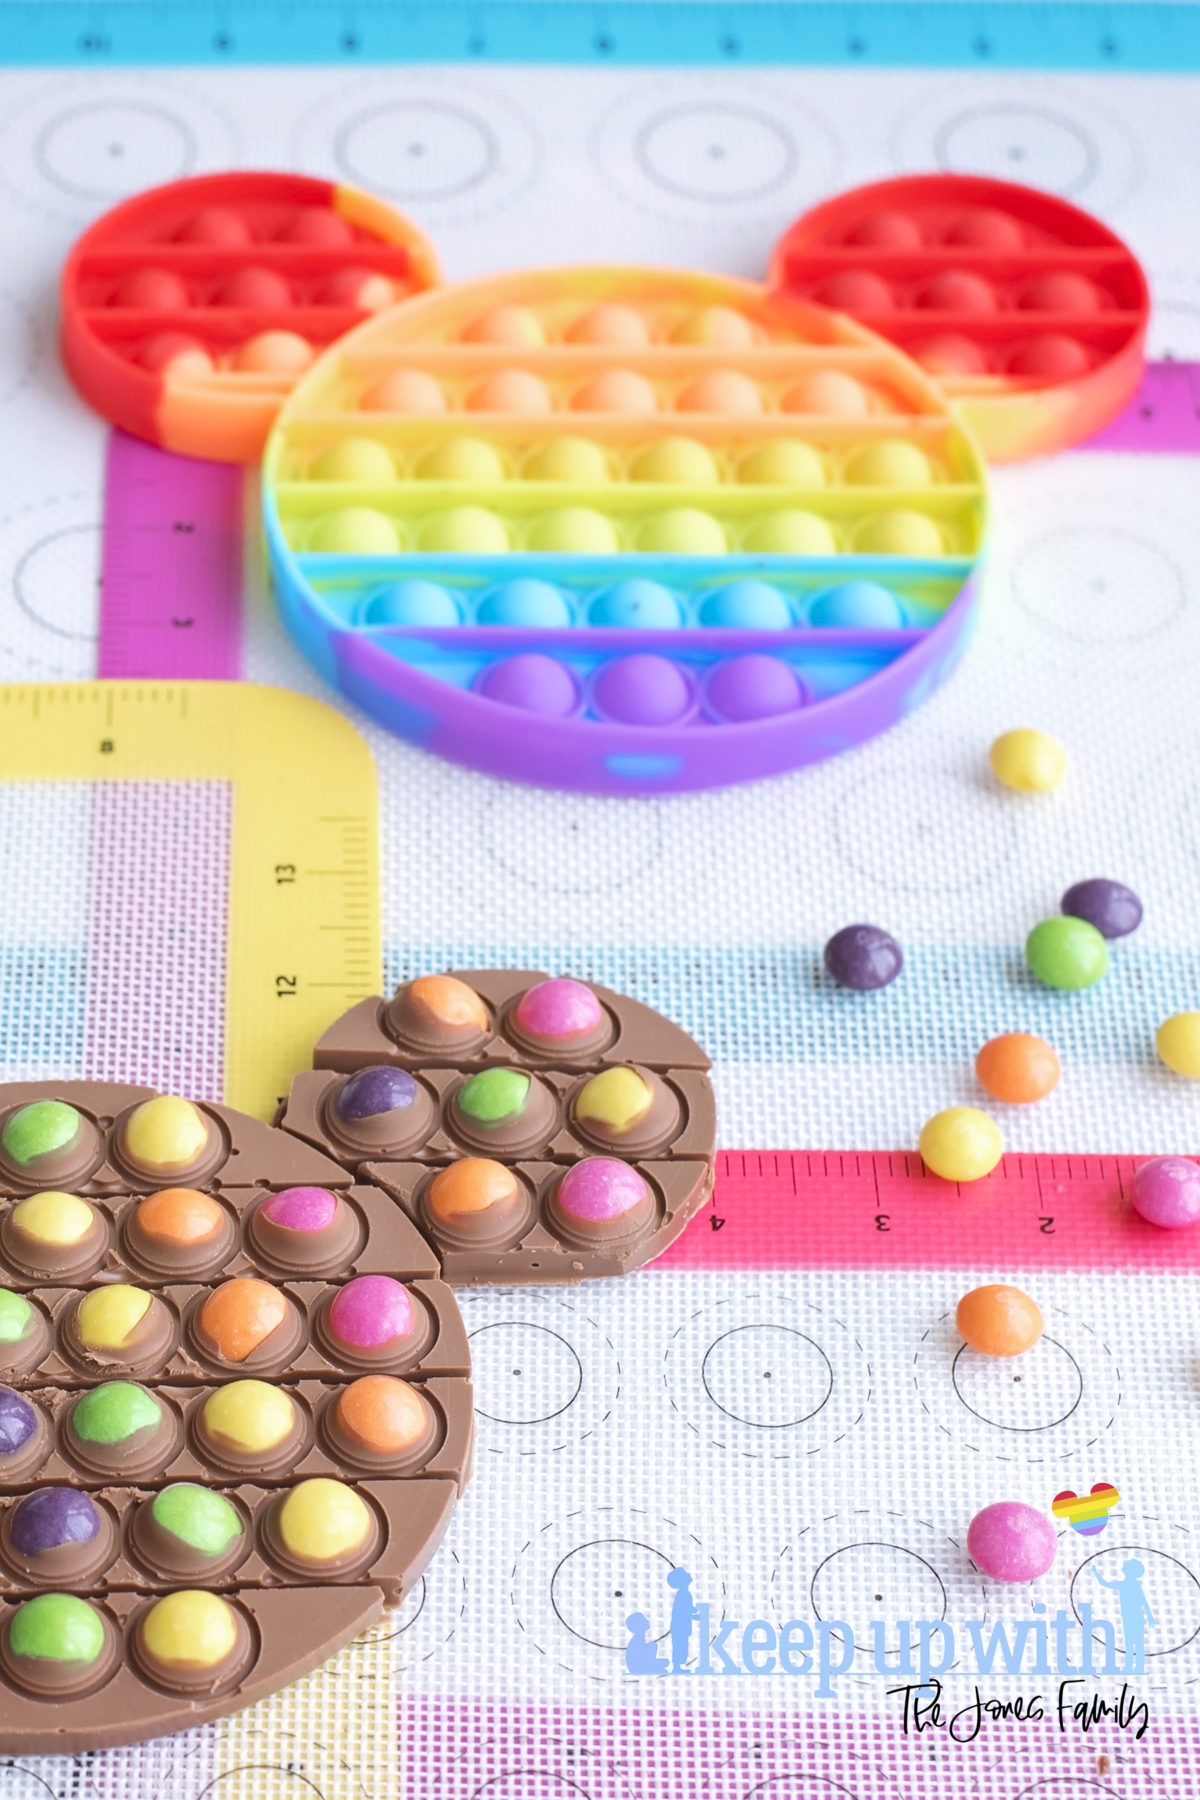 Image shows a rainbow Pop-It toy in the shape of Mickey Mouse on rainbow silicone baking trays, surrounded by skittles sweets and a chocolate bar dotted with the sweets. A Disney's Mickey Mouse Pop-It Chocolate Bar. Image by Keep Up With the Jones Family.